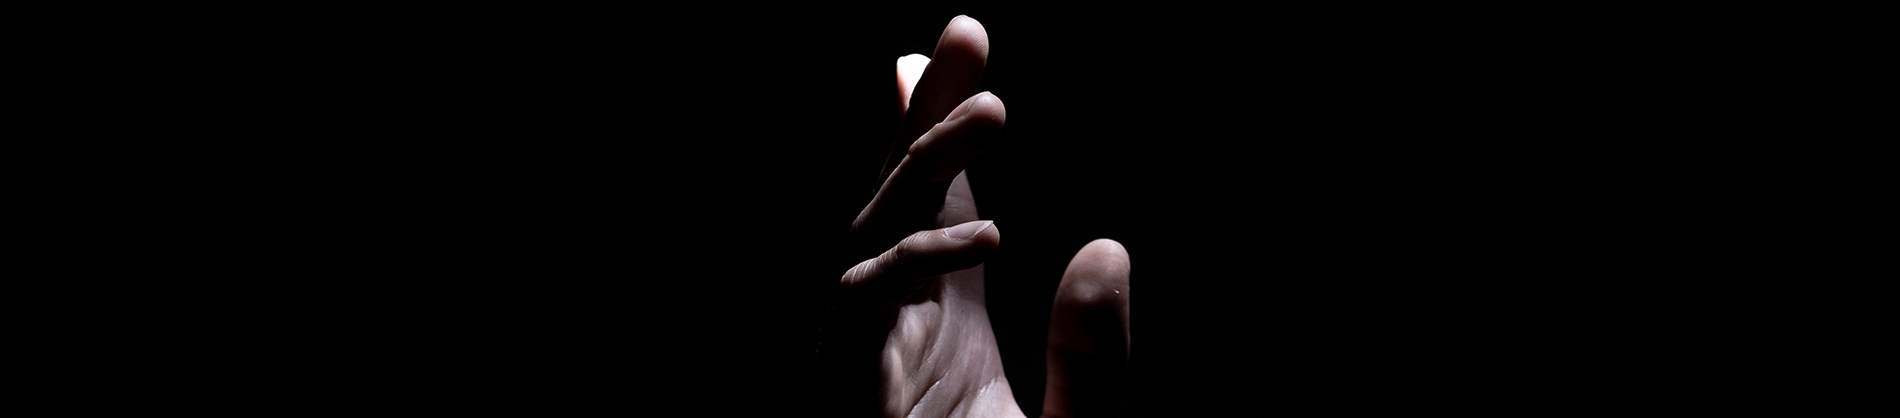 A black background with a hand reaching into the light